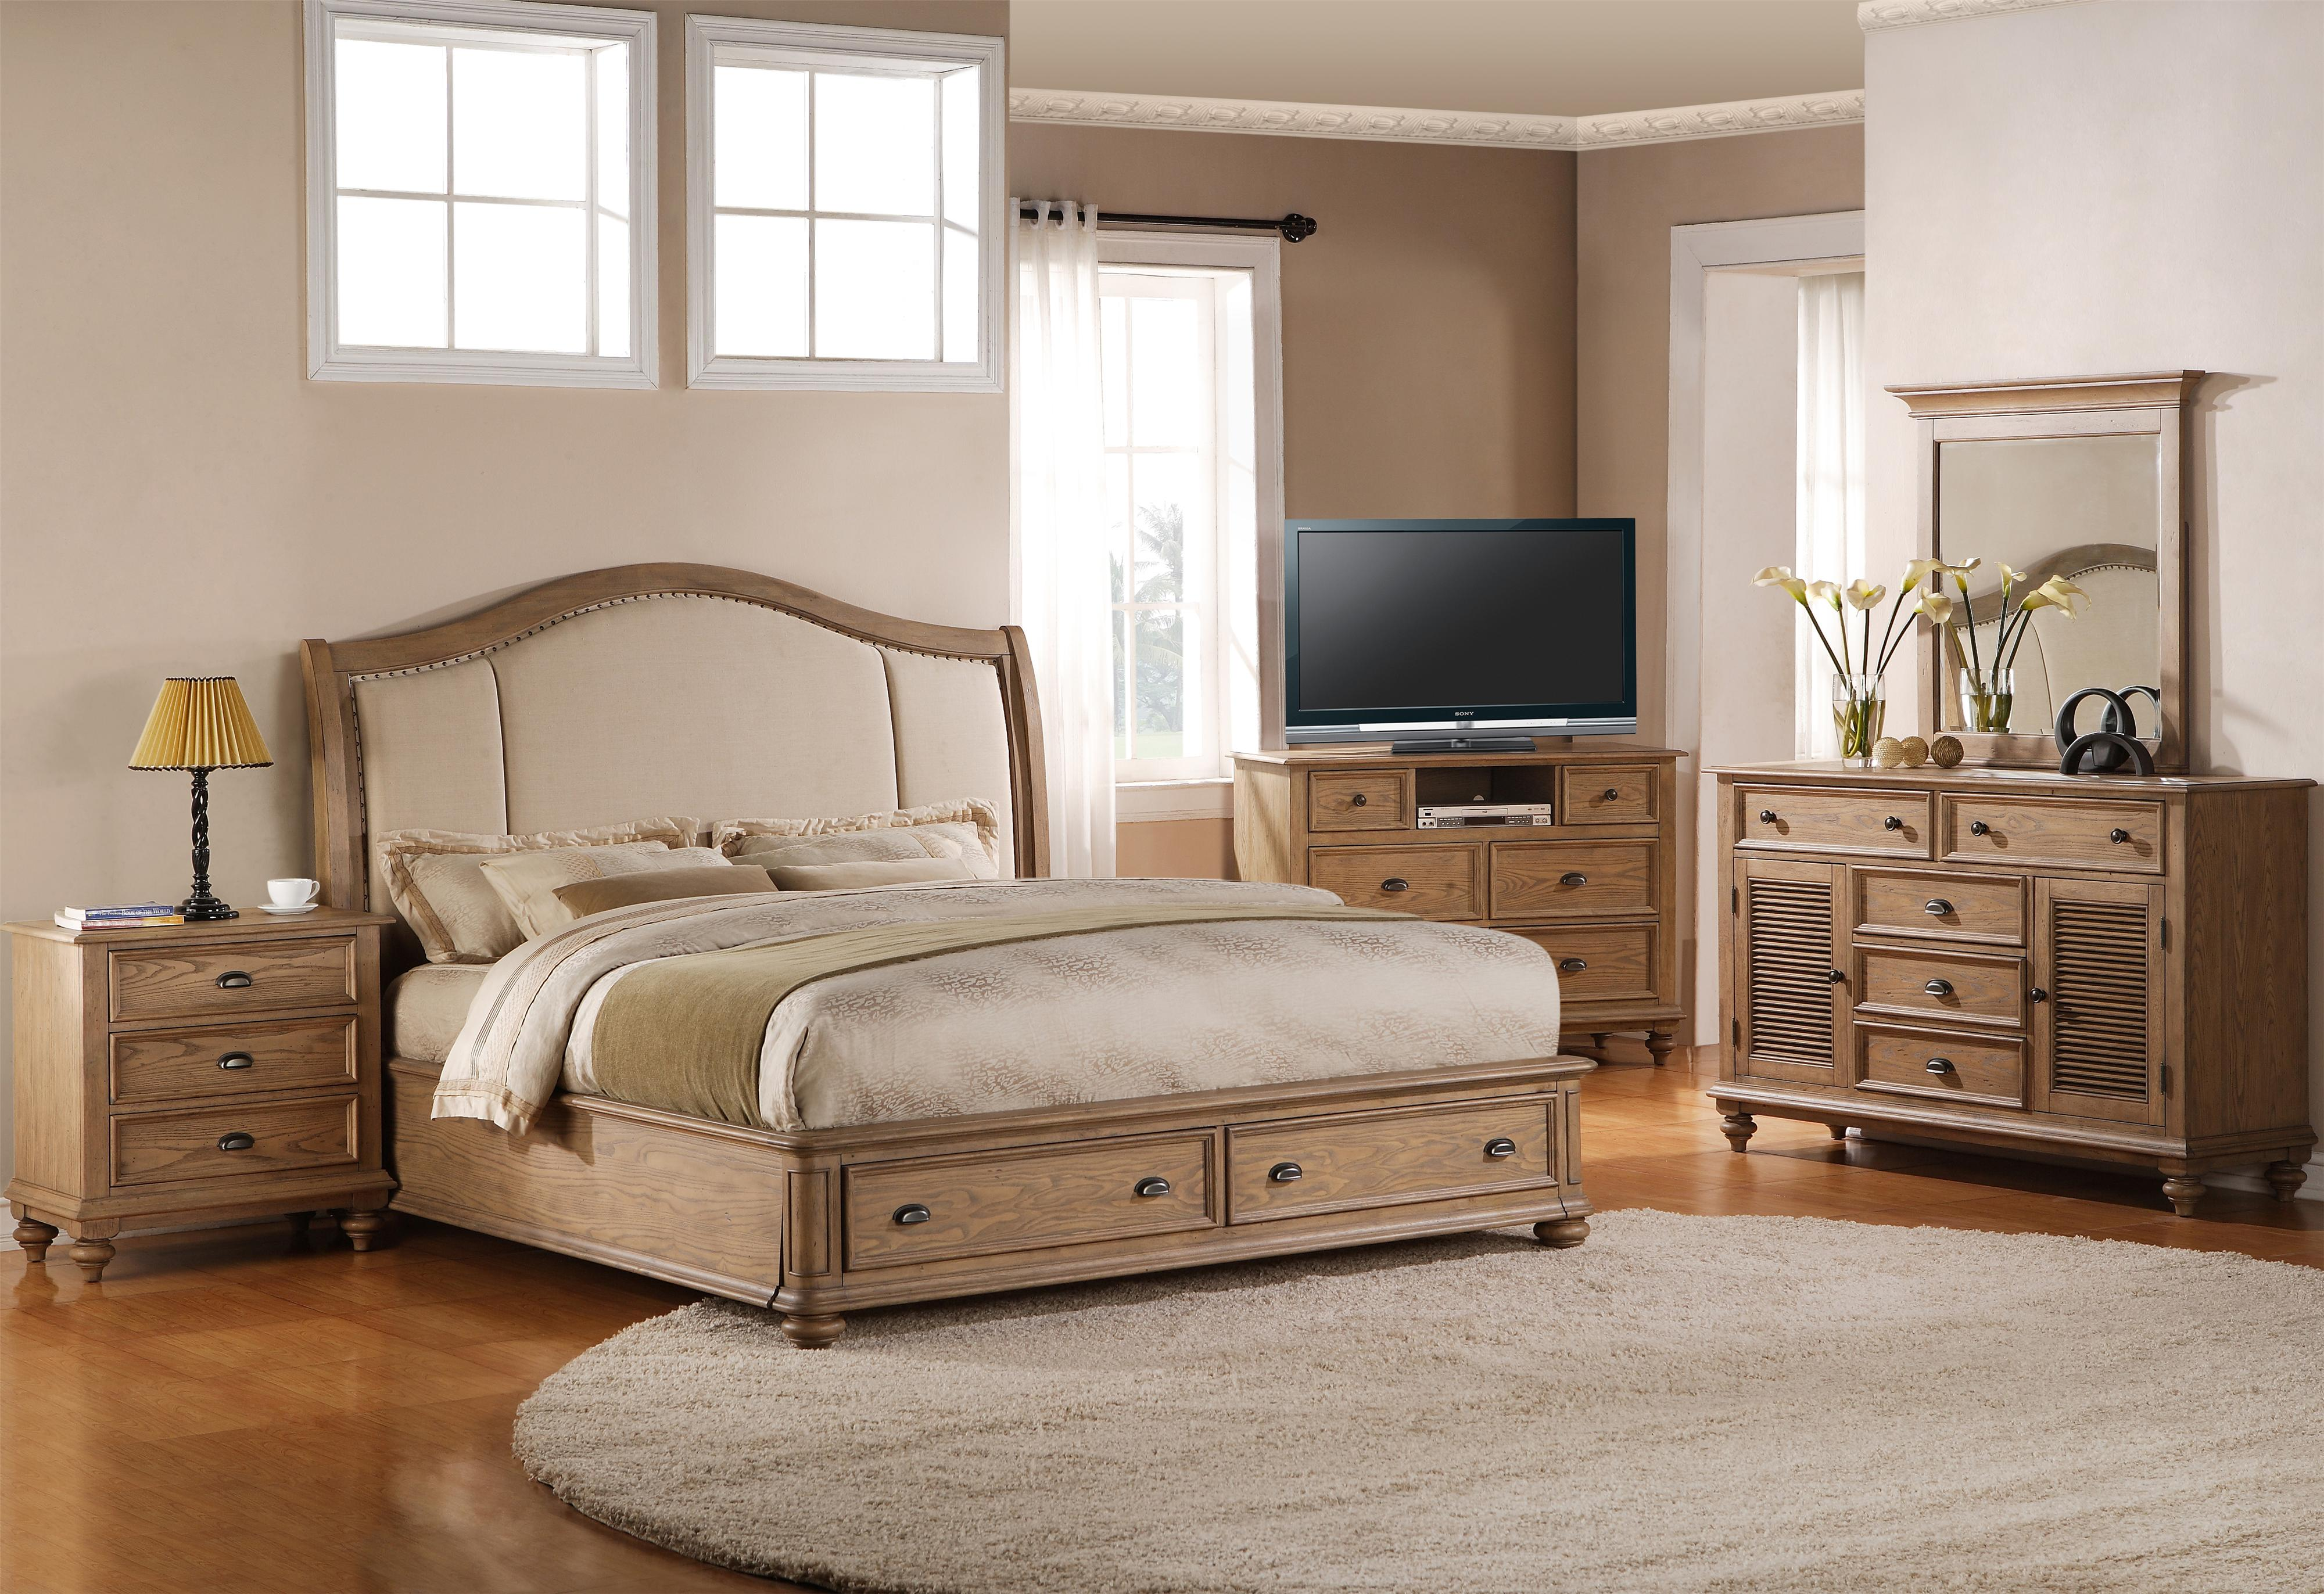 Coventry King Upholstered Headboard Bed With Storage